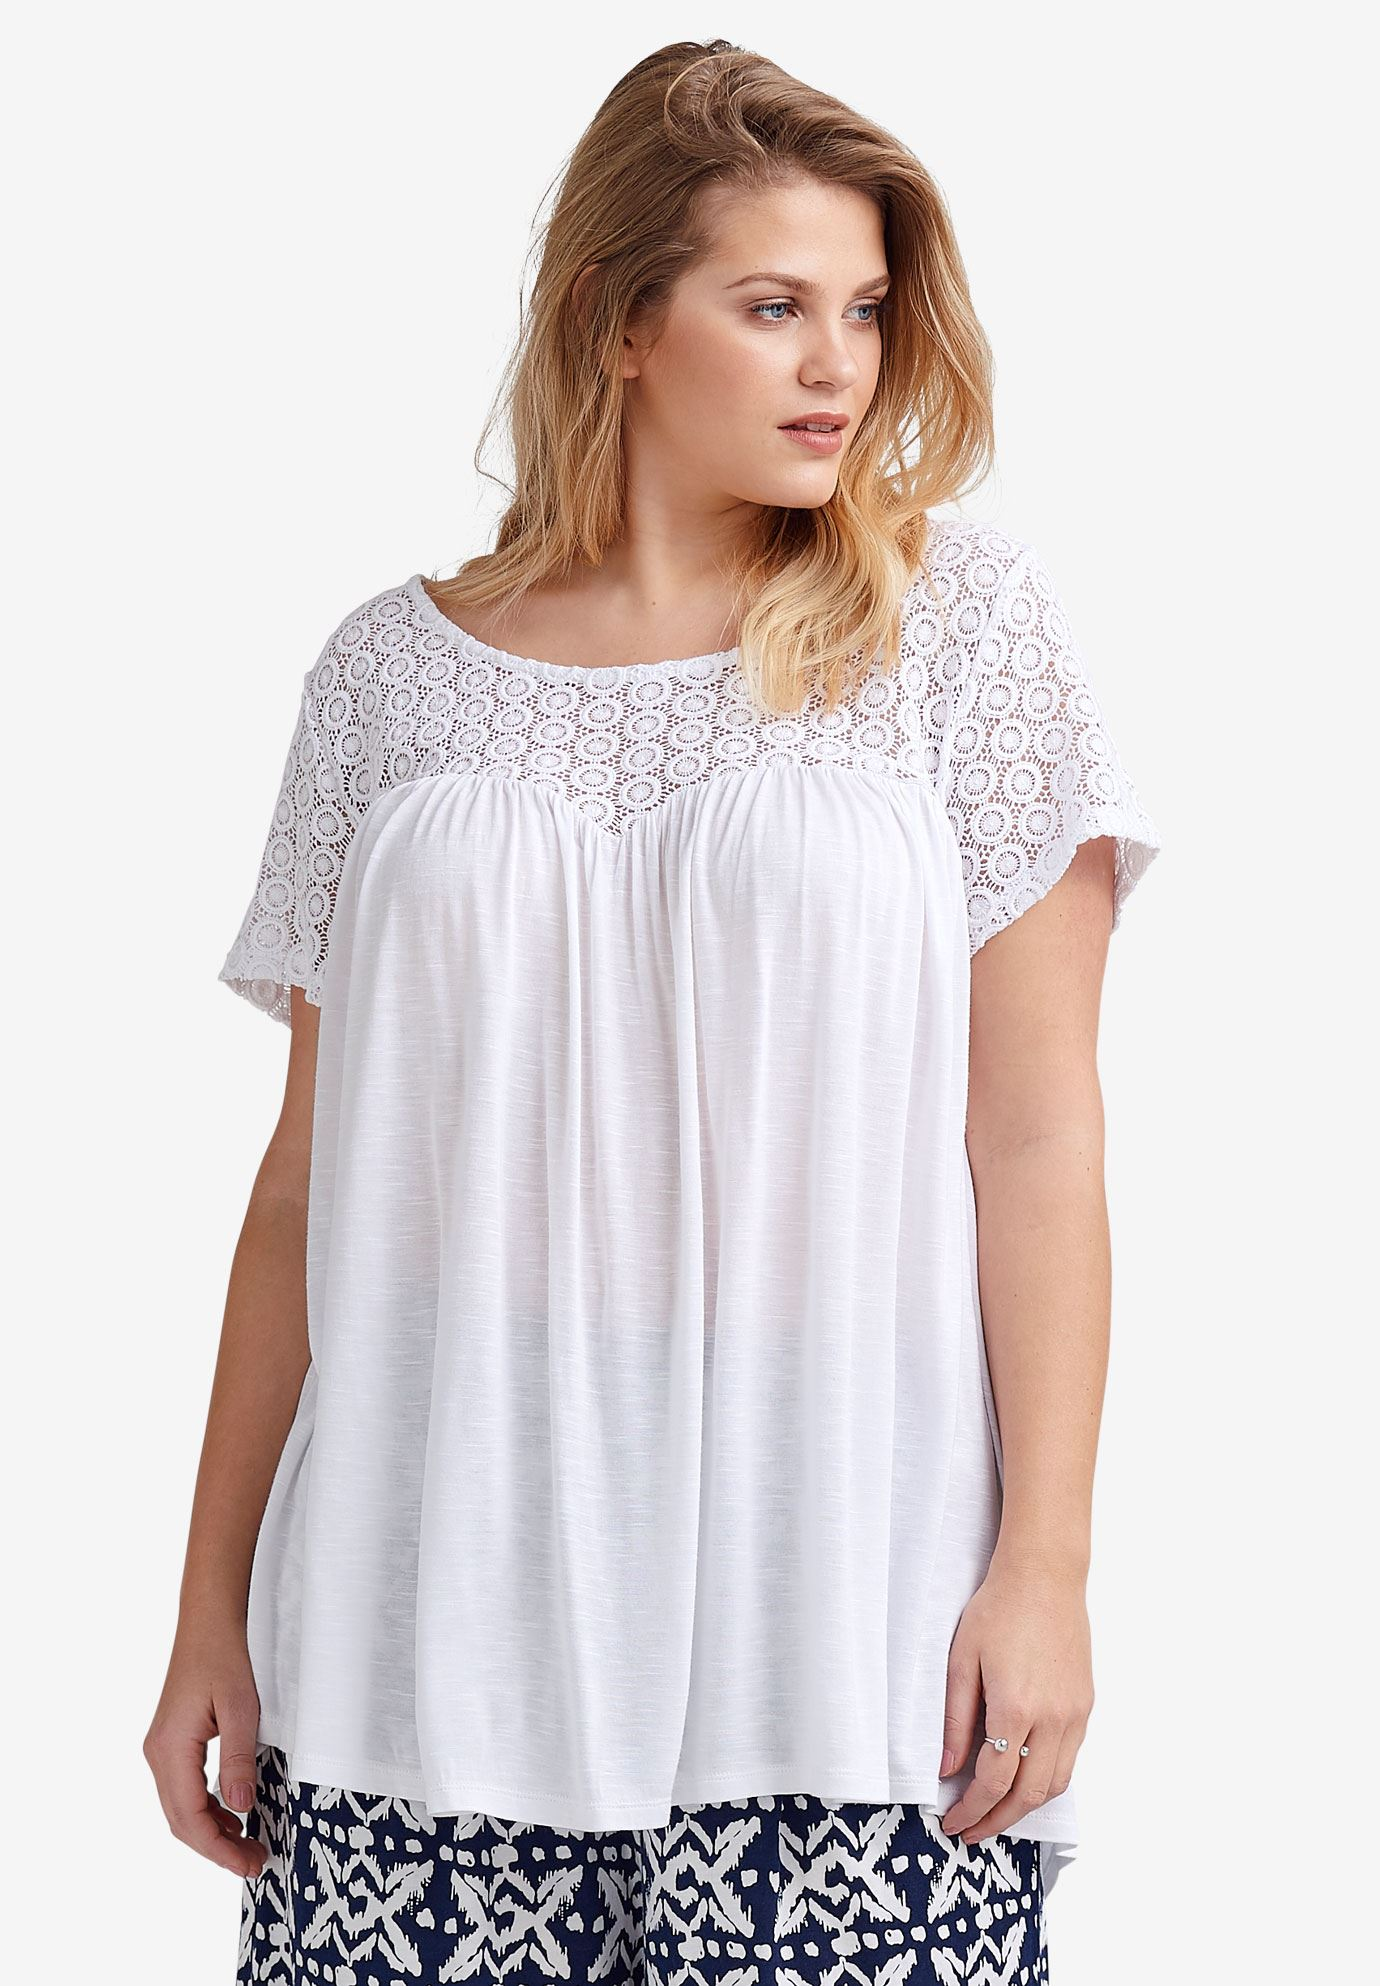 lace yoke teeellos®  plus size shirts  blouses